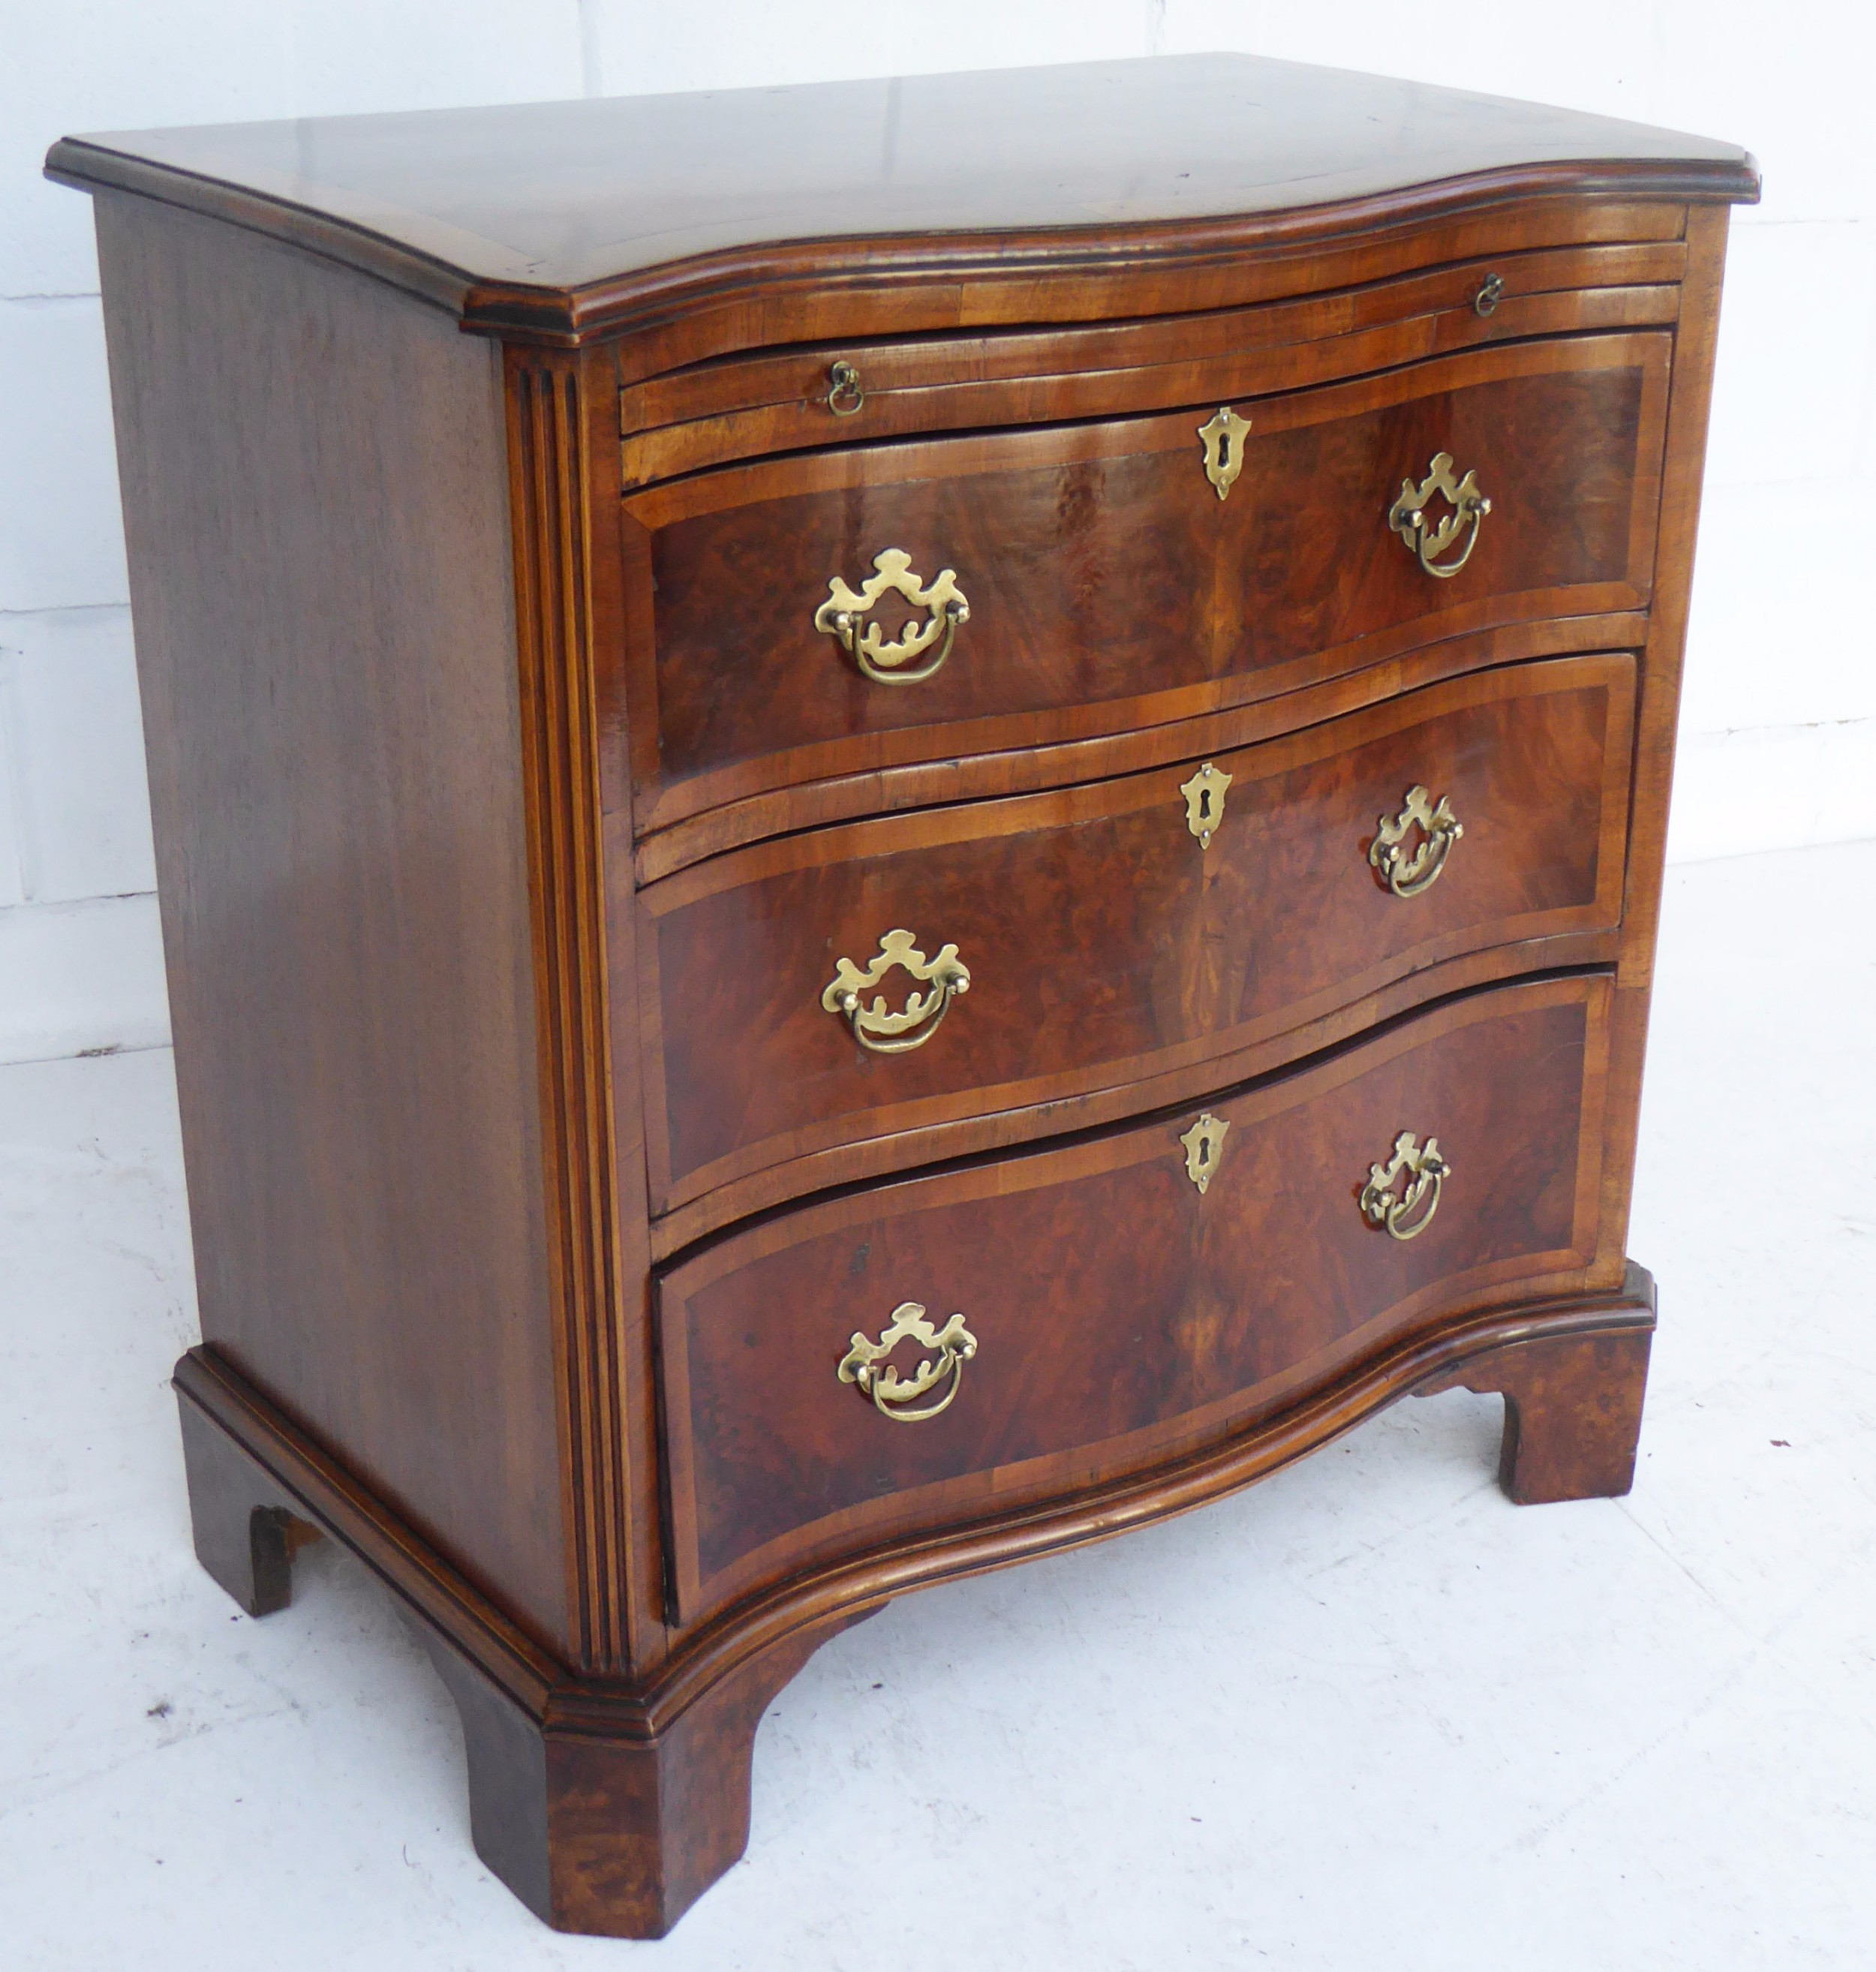 FB Antiques Rawlings Farm Buildings Unit 7 Main Road Rettendon Common Chelmsford  Essex CM3 8DY United Kingdom Tel: 01245 401 210 Int'l Tel: +44 1245 401 210  www.fgbantiques.co.uk  VIEW STOCK PAGE, antique pine chest of drawers, antique cherry chest of drawers